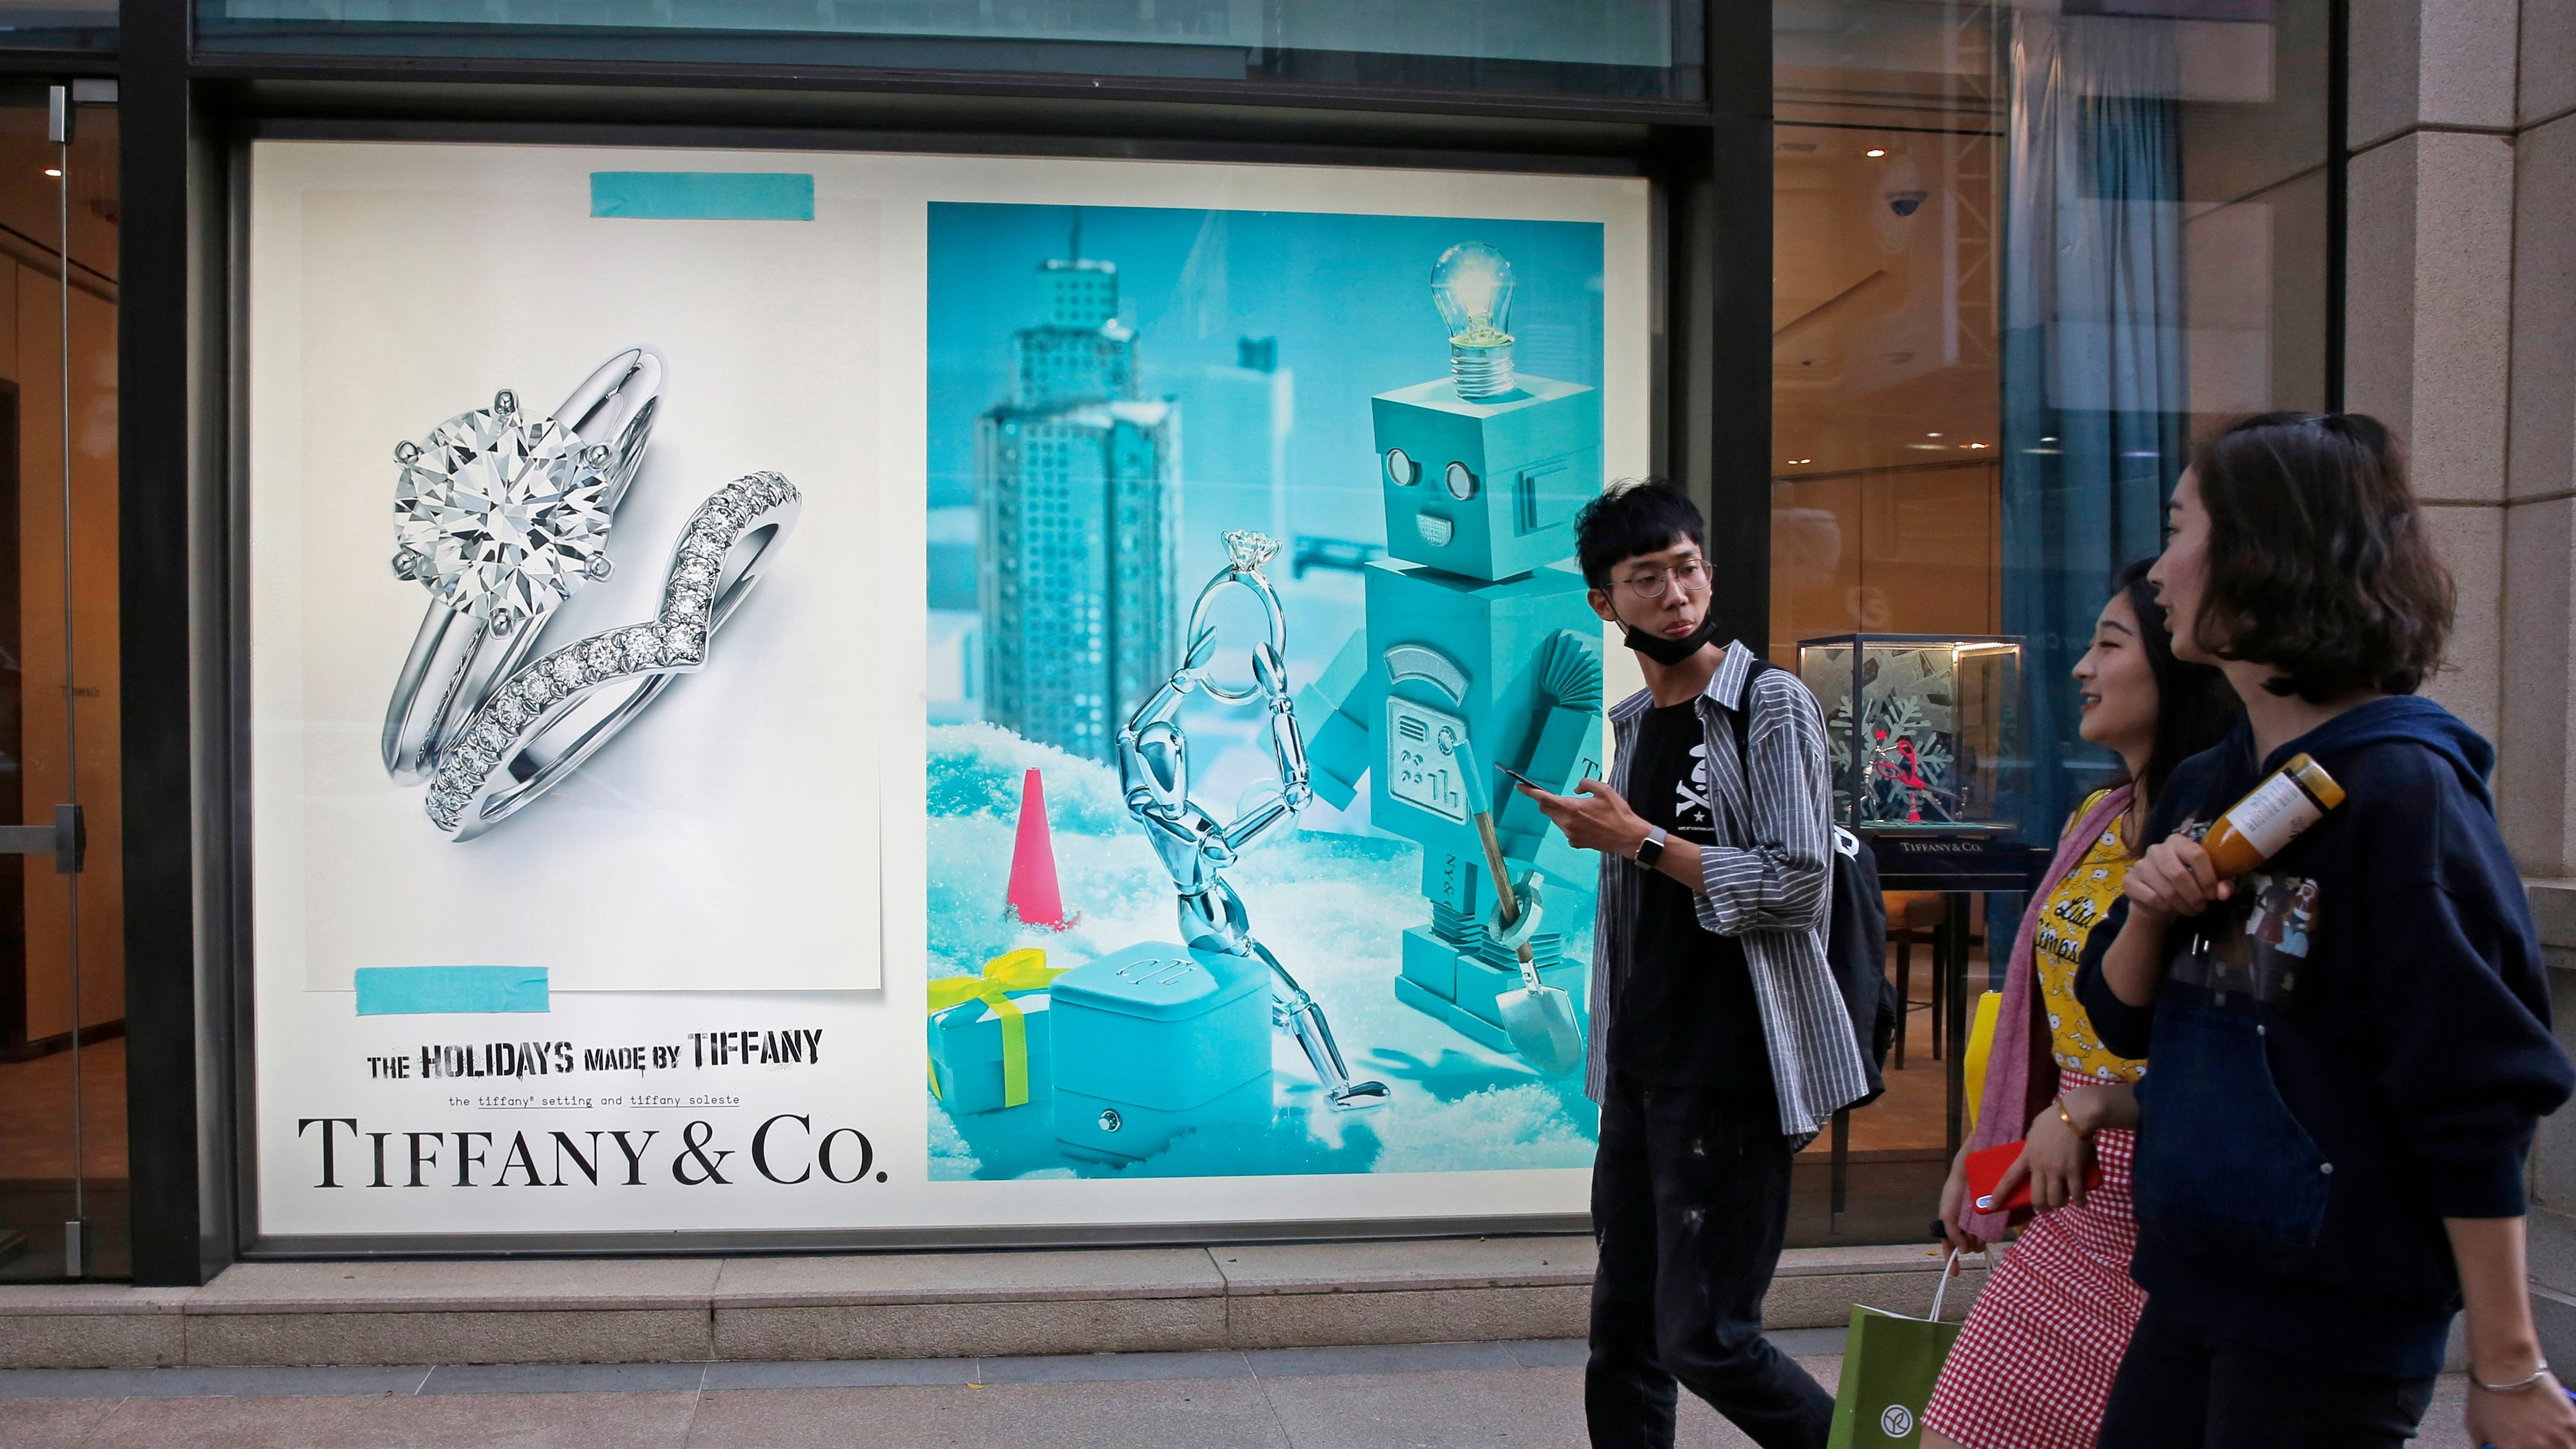 In this Thursday, Nov. 29, 2018 photo, Chinese tourists walk past a Tiffany & Co. flagship in Canton Road, the one-stop-shop high street of high-end brands in Hong Kong. The designer boutiques of Manhattan and Paris are feeling the chill of a Chinese economic slowdown that has hammered automakers and other industries. That is jolting brands such as Louis Vuitton and Burberry that increasingly rely on Chinese customers who spend $90 billion a year on jewelry, clothes and other high-end goods. The industry already is facing pressure to keep up as China's big spenders shift to buying more at the spreading networks of luxury outlets in their own country. (AP Photo/Kin Cheung)